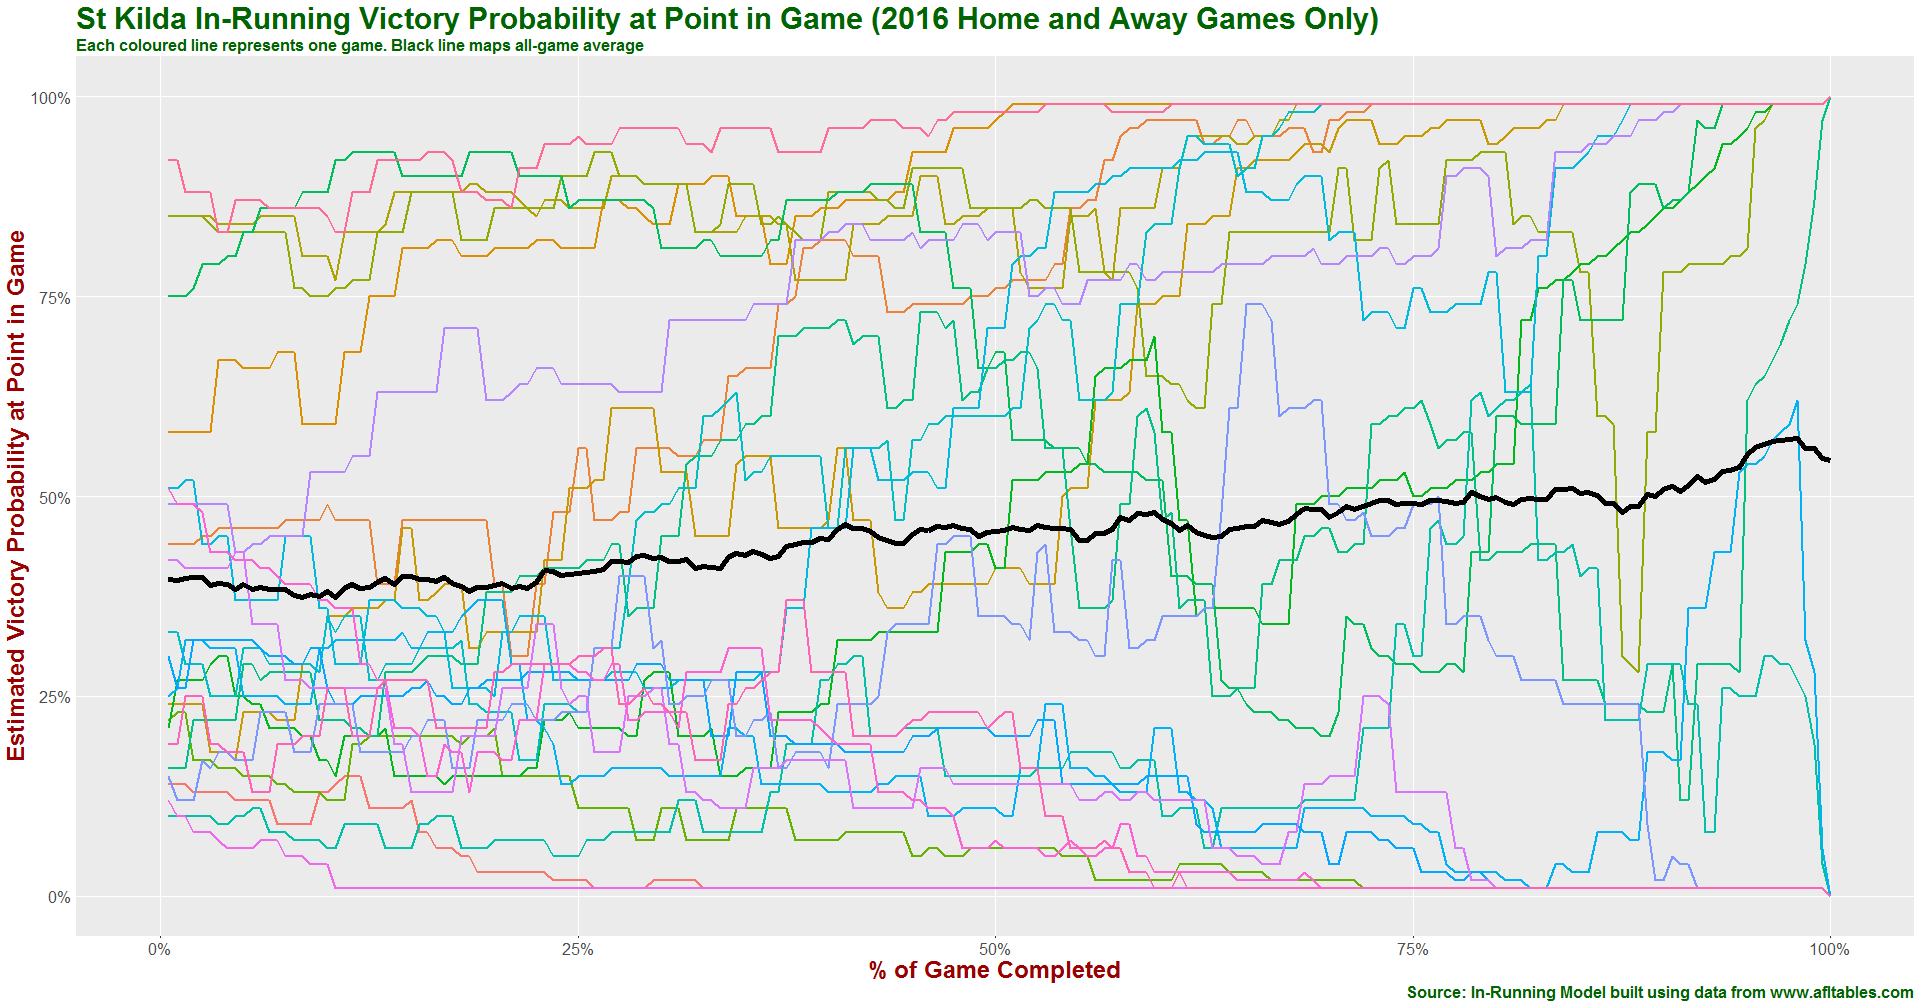 St Kilda in-running prob history 2016.png